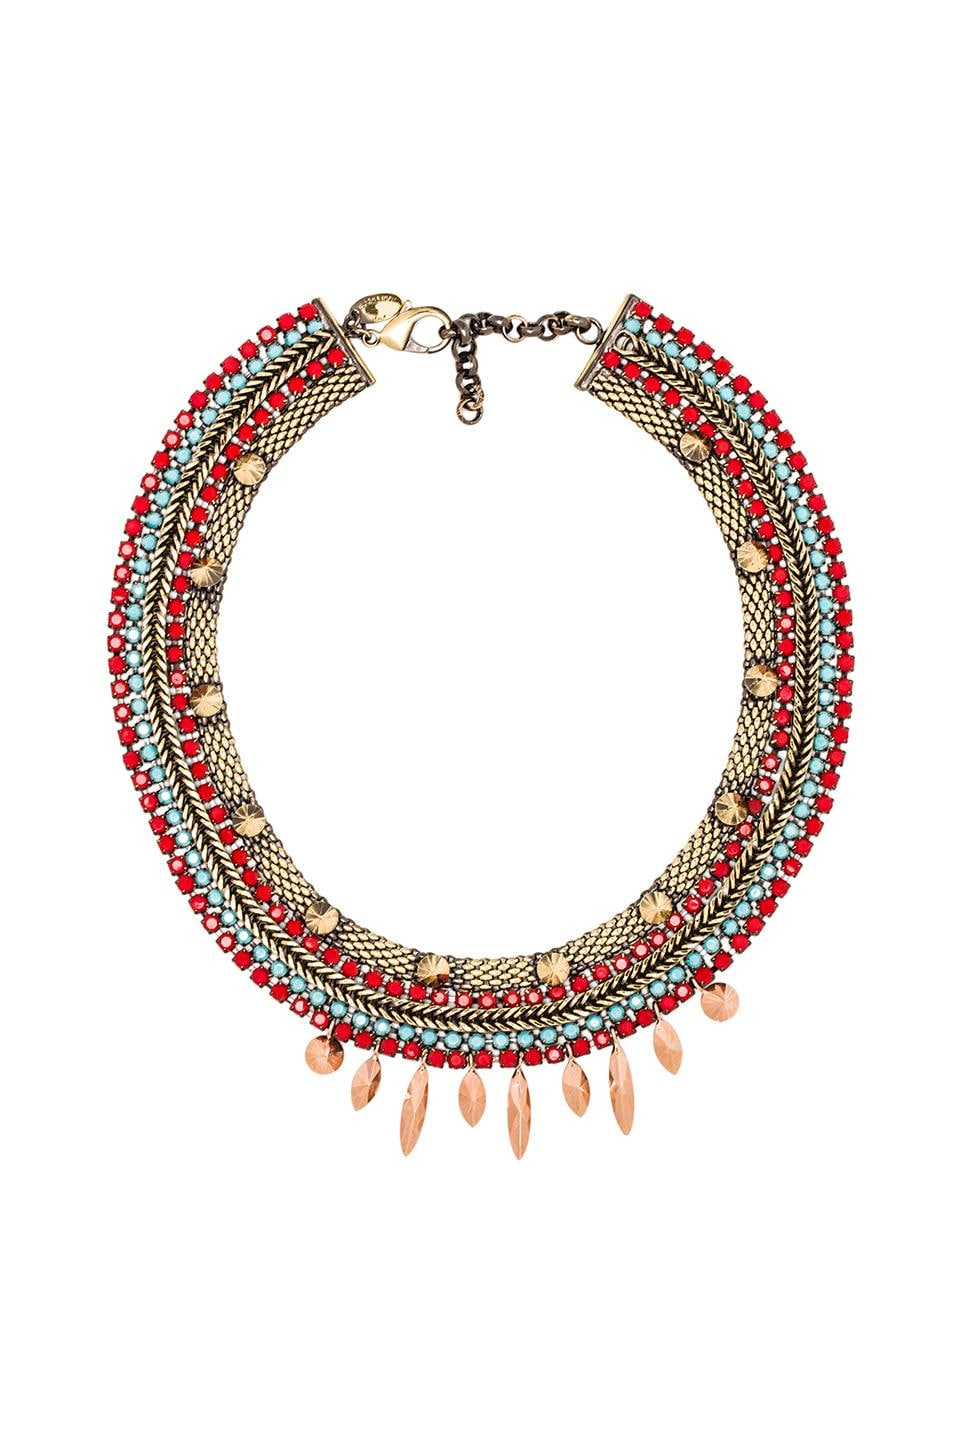 Iosselliani Tribal Feather Necklace in Coral